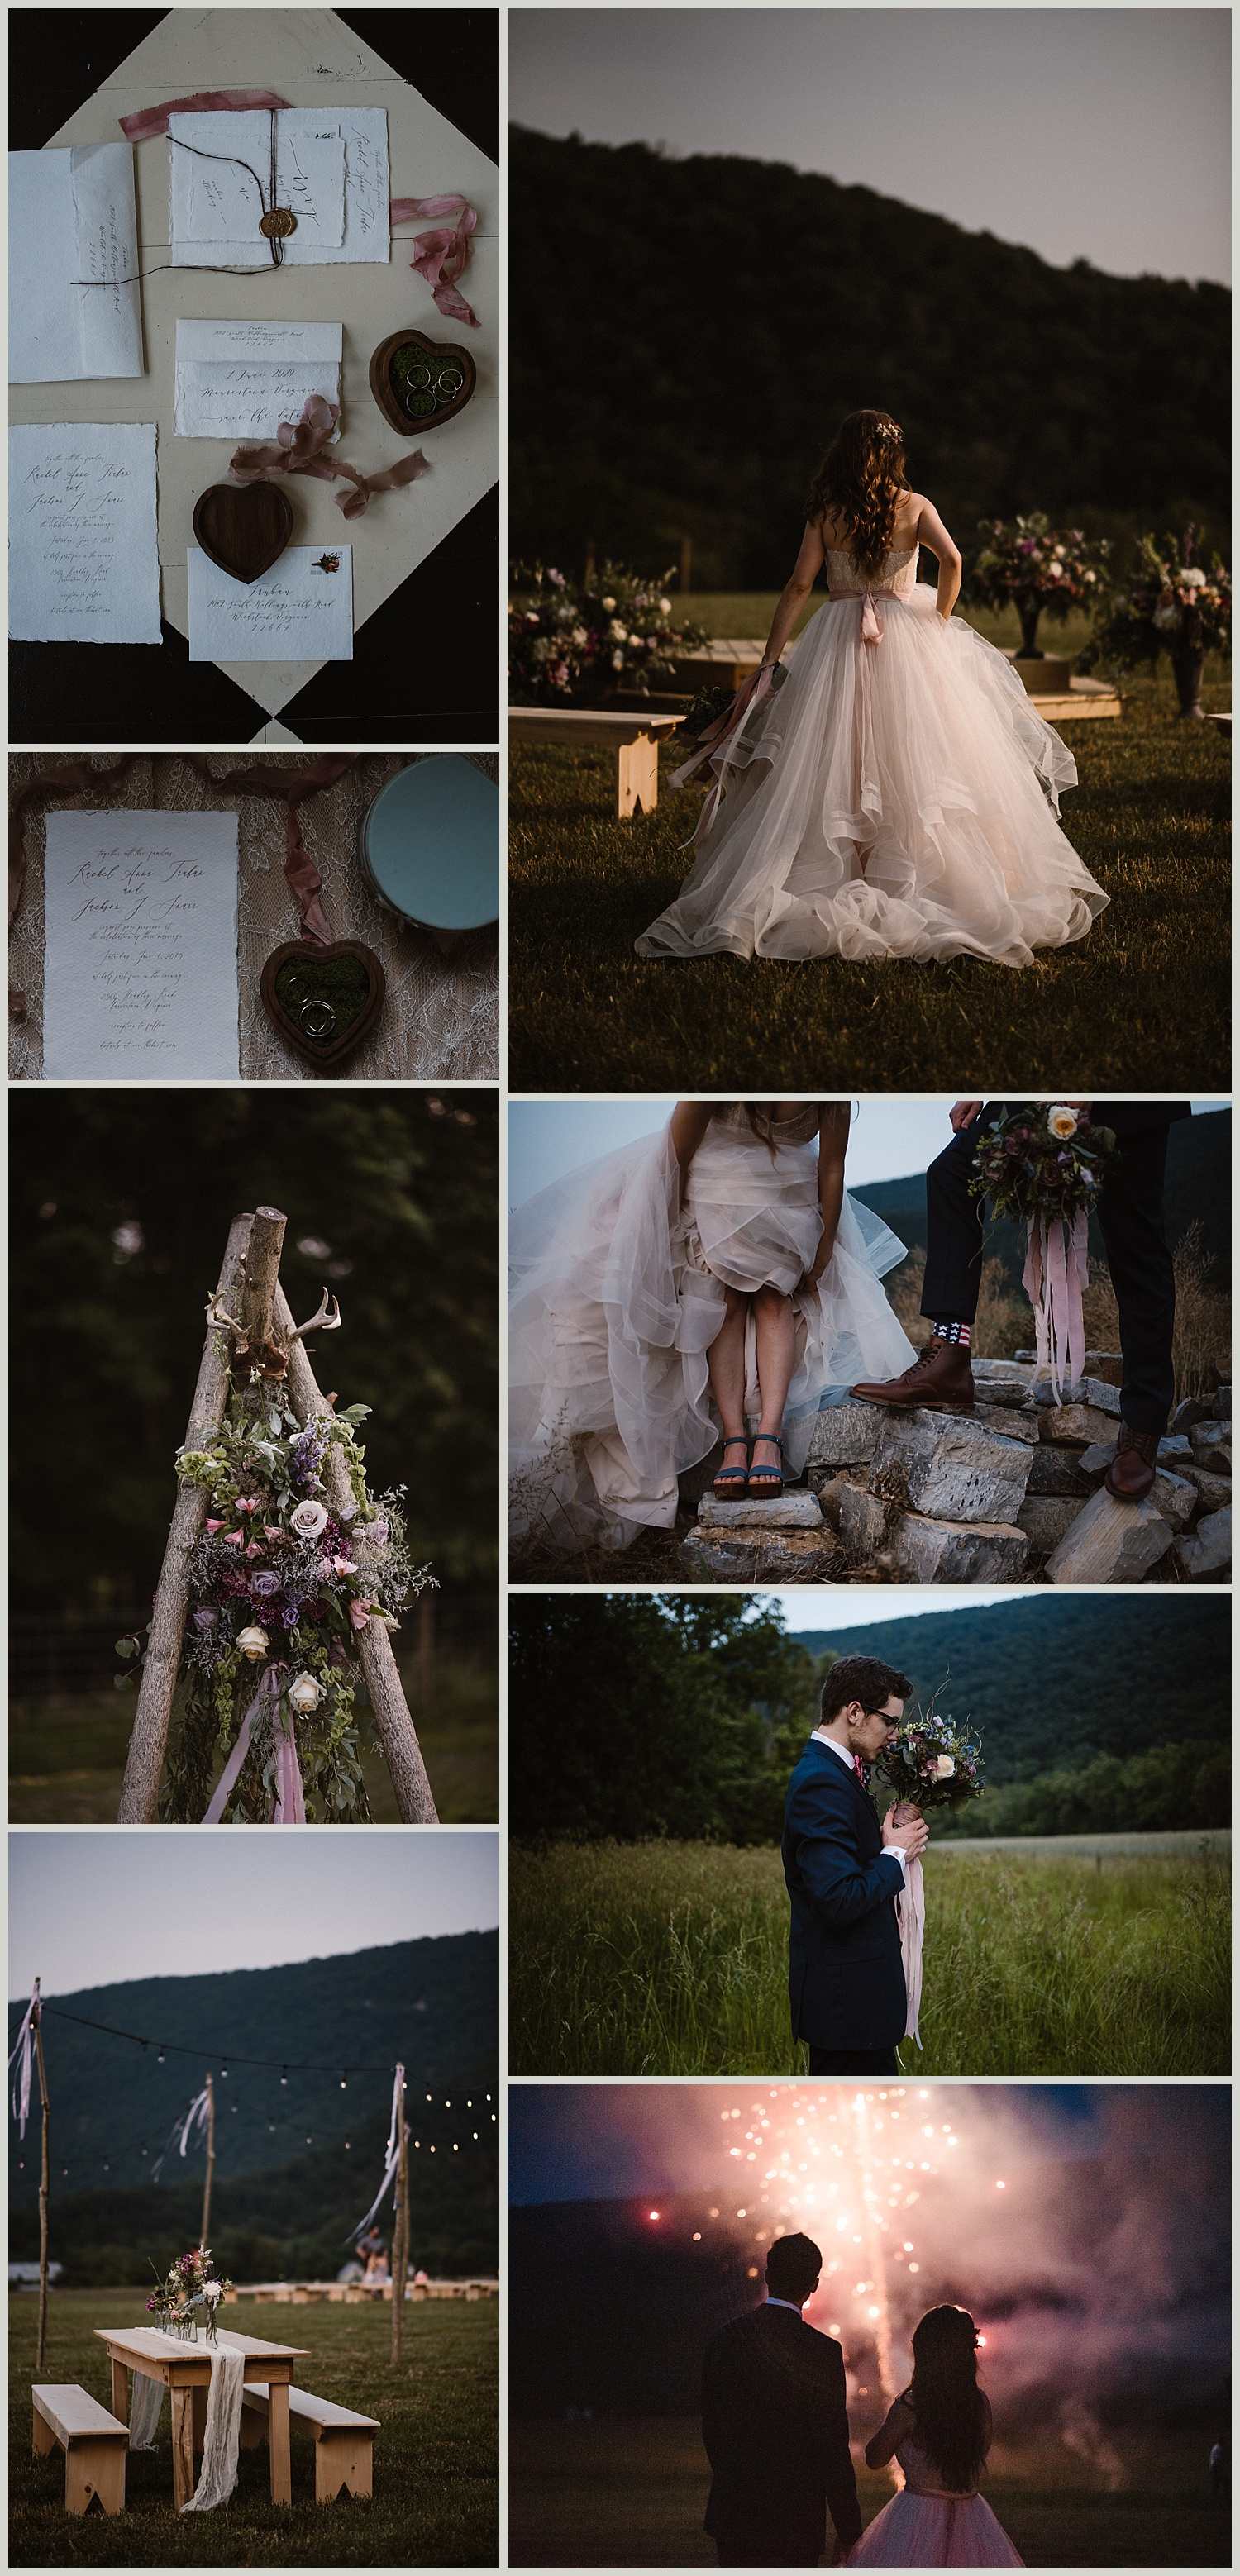 Rachel and Jackson - Our Wedding - White Sails Creative.jpg